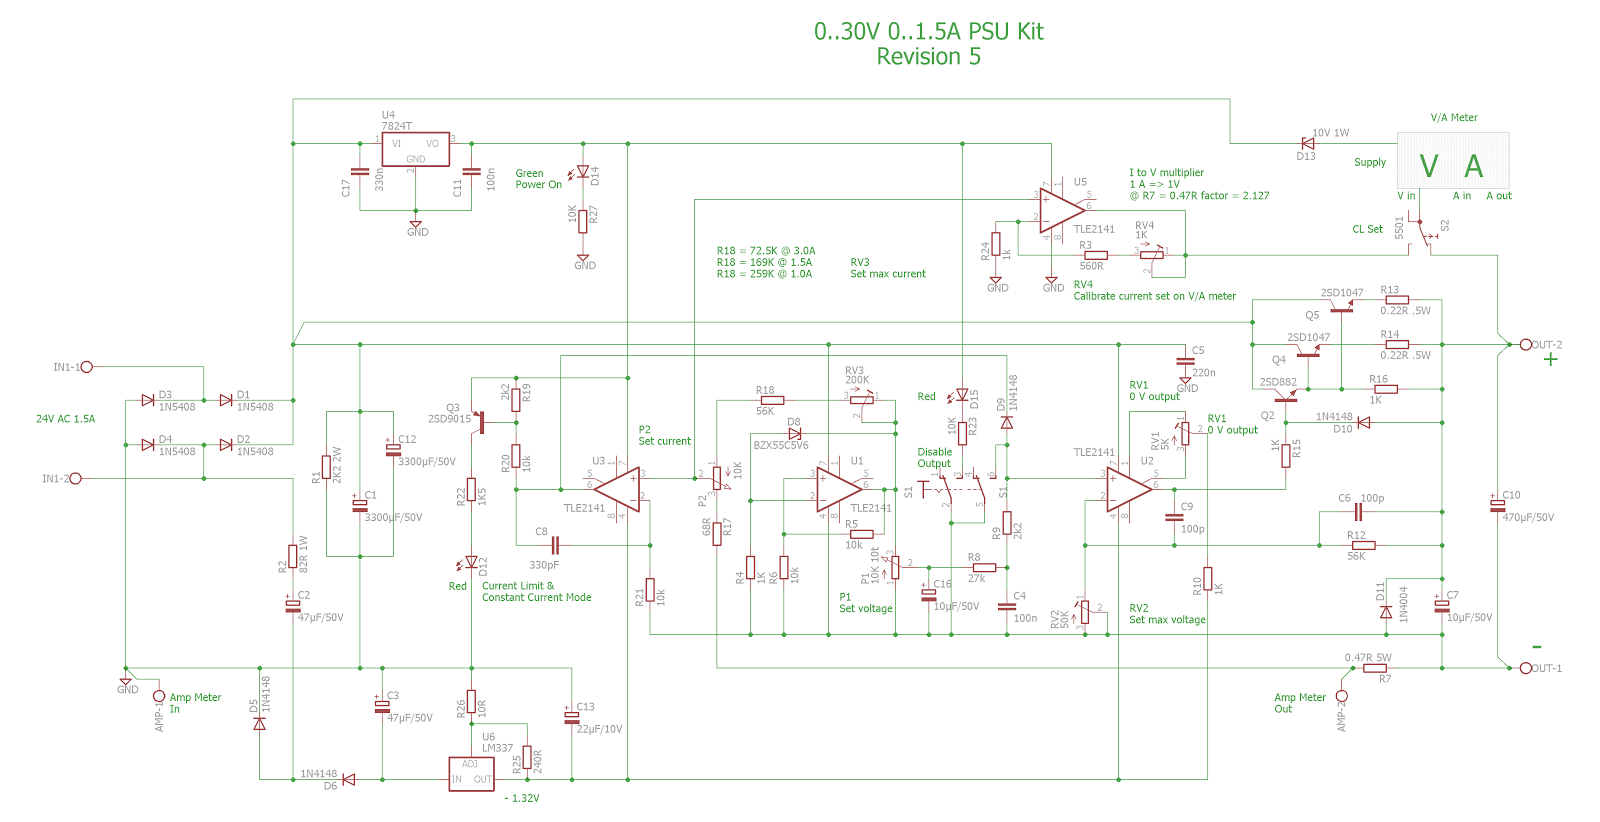 Pauls Diy Electronics Blog Tuning A 030v Dc 03a Psu Kit Circuit Diagram Online Of Ups 500w 2 The Rise Time Supply Is Now About 5msec And Fall Just Over Msec At Maximum Voltage Current Measured With Dynamic Electronic Load